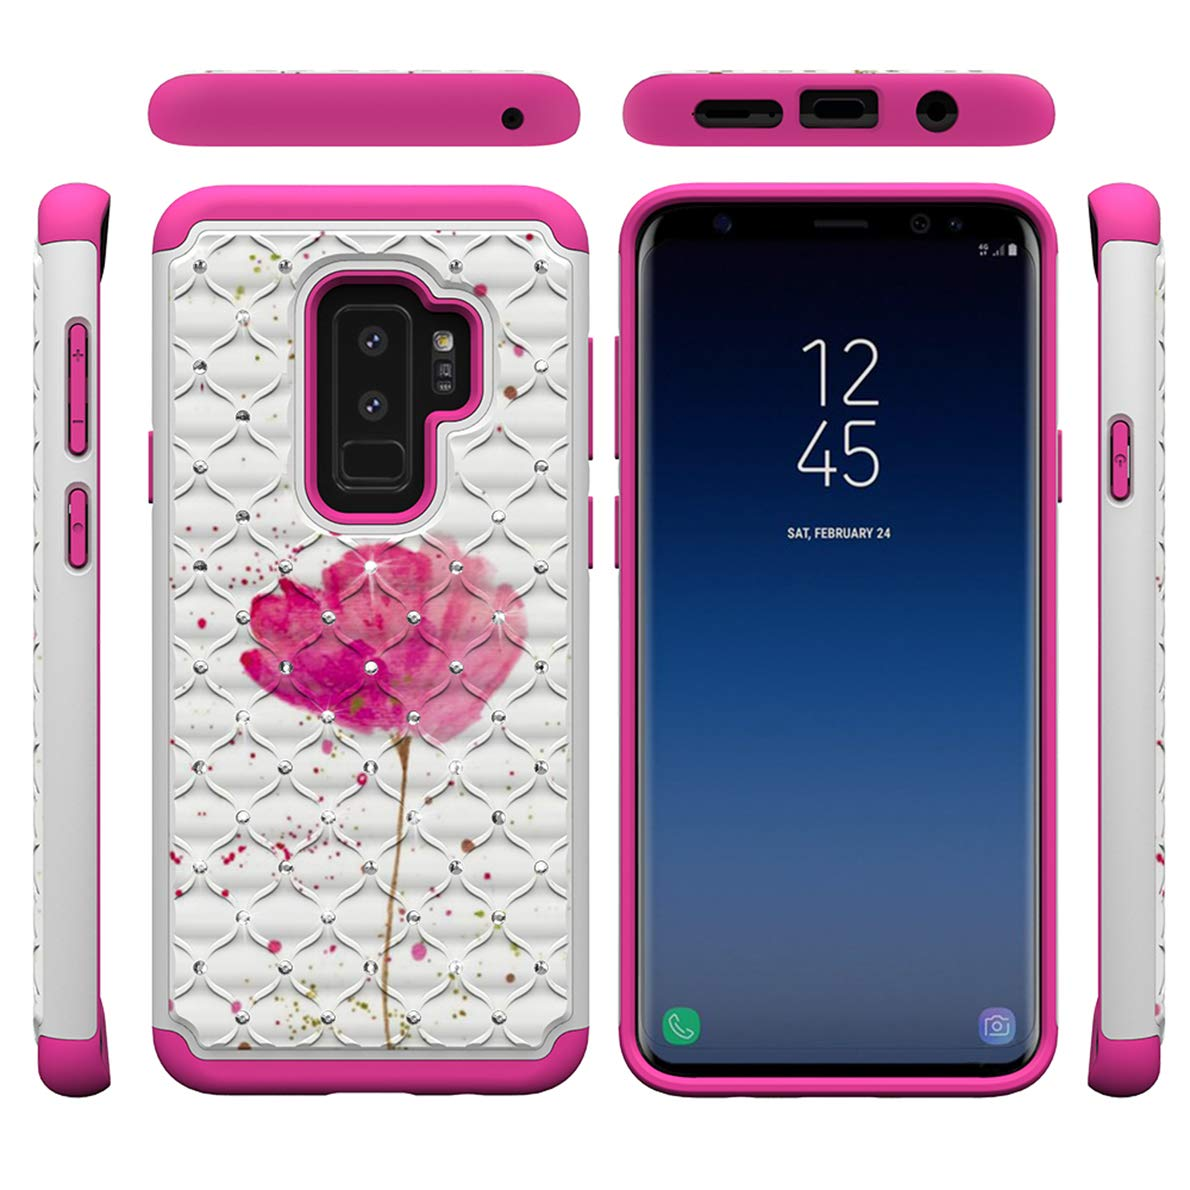 Samsung Galaxy S9 Plus Hülle, SHUTIT Farbe Muster Case Bling Shiny Glitzer Shockproof Schutzhülle 2 in 1 Hybrid Harte PC Weiche TPU Schale Cover Handyhülle für Samsung Galaxy S9 Plus SHUYIT